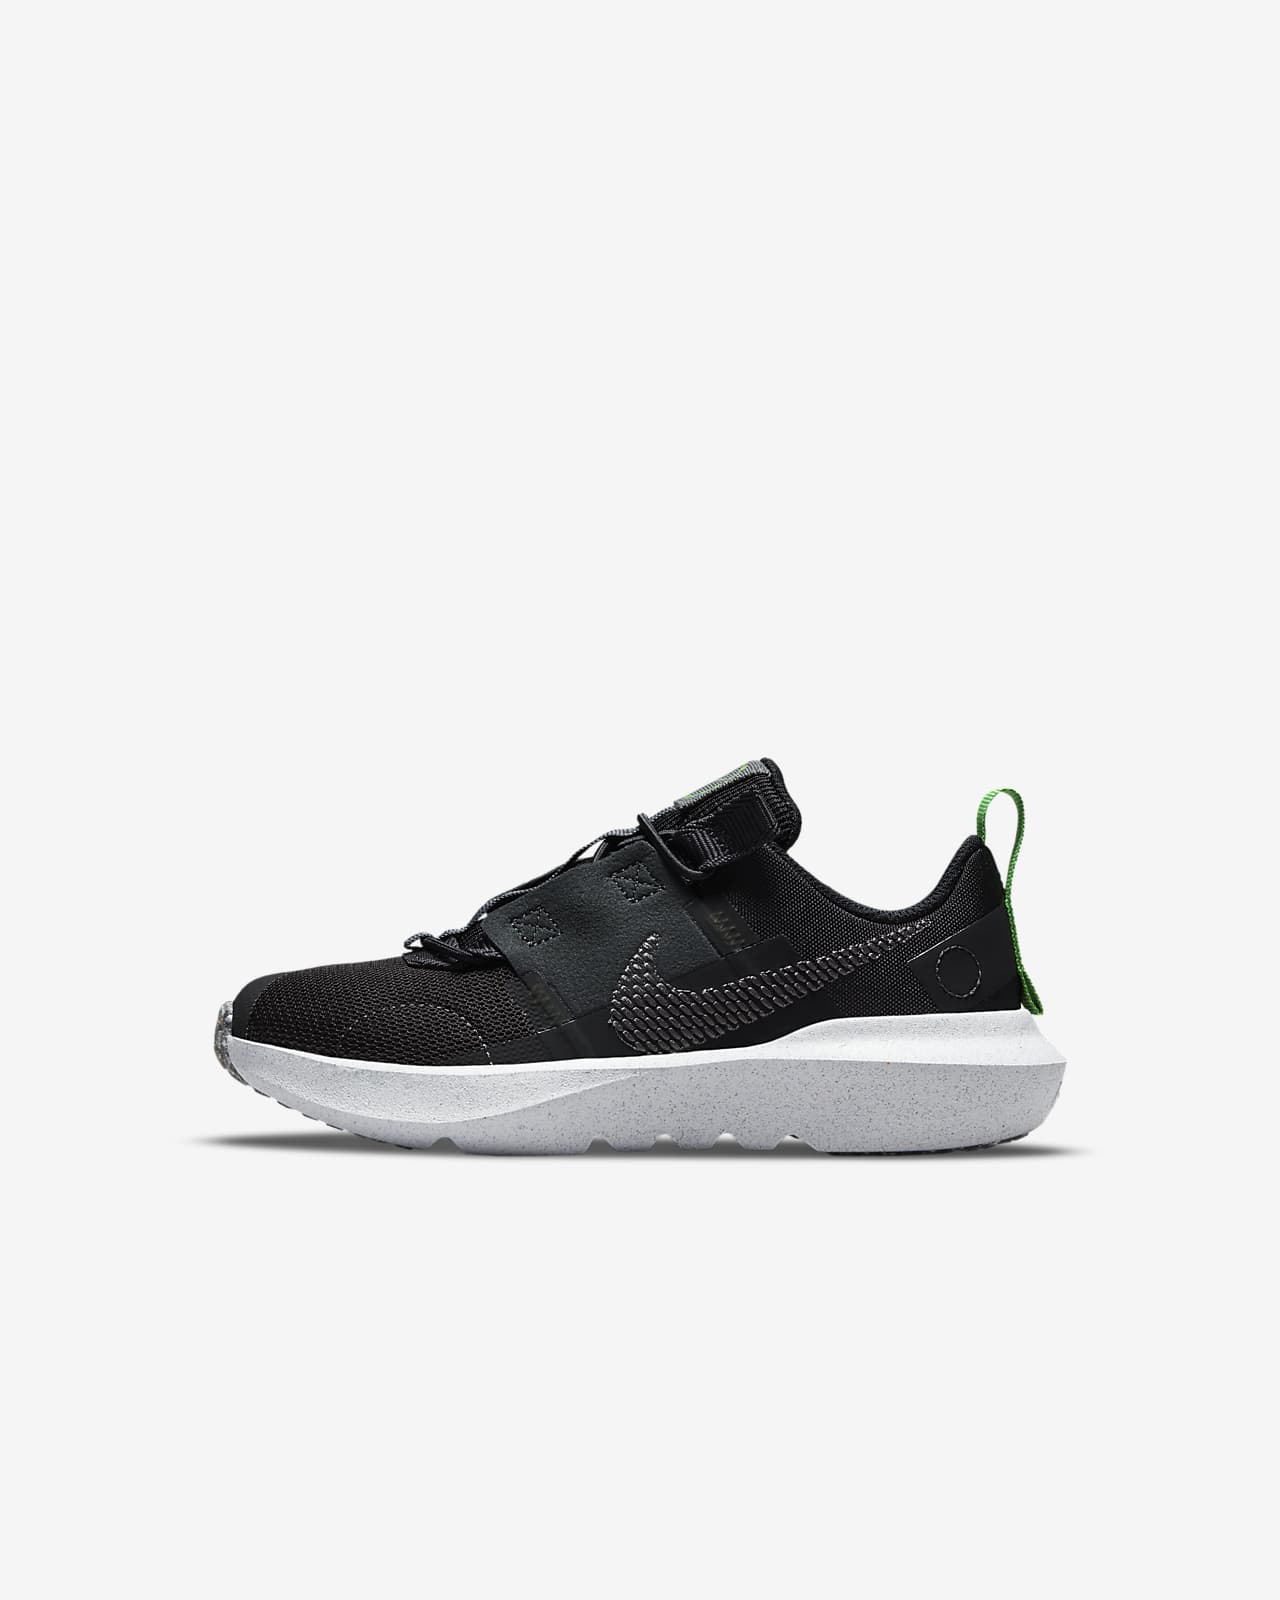 Nike Crater Impact Younger Kids' Shoe